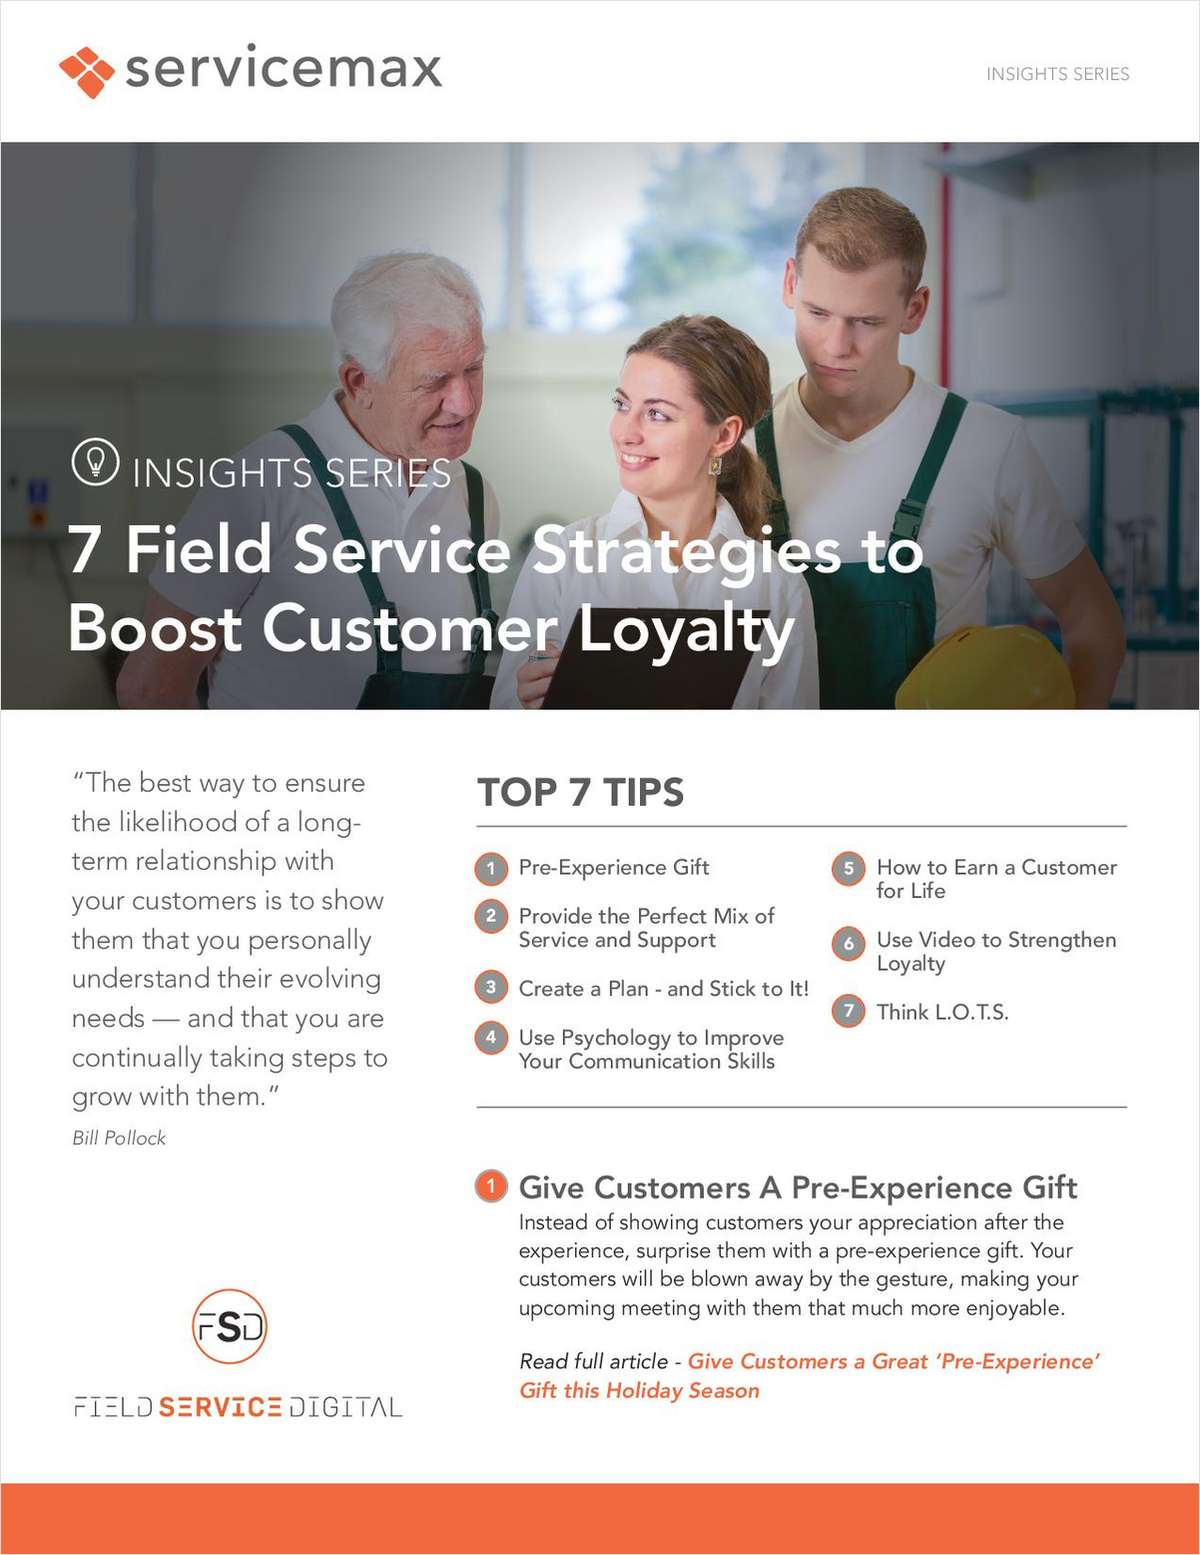 7 Field Service Strategies to Boost Customer Loyalty